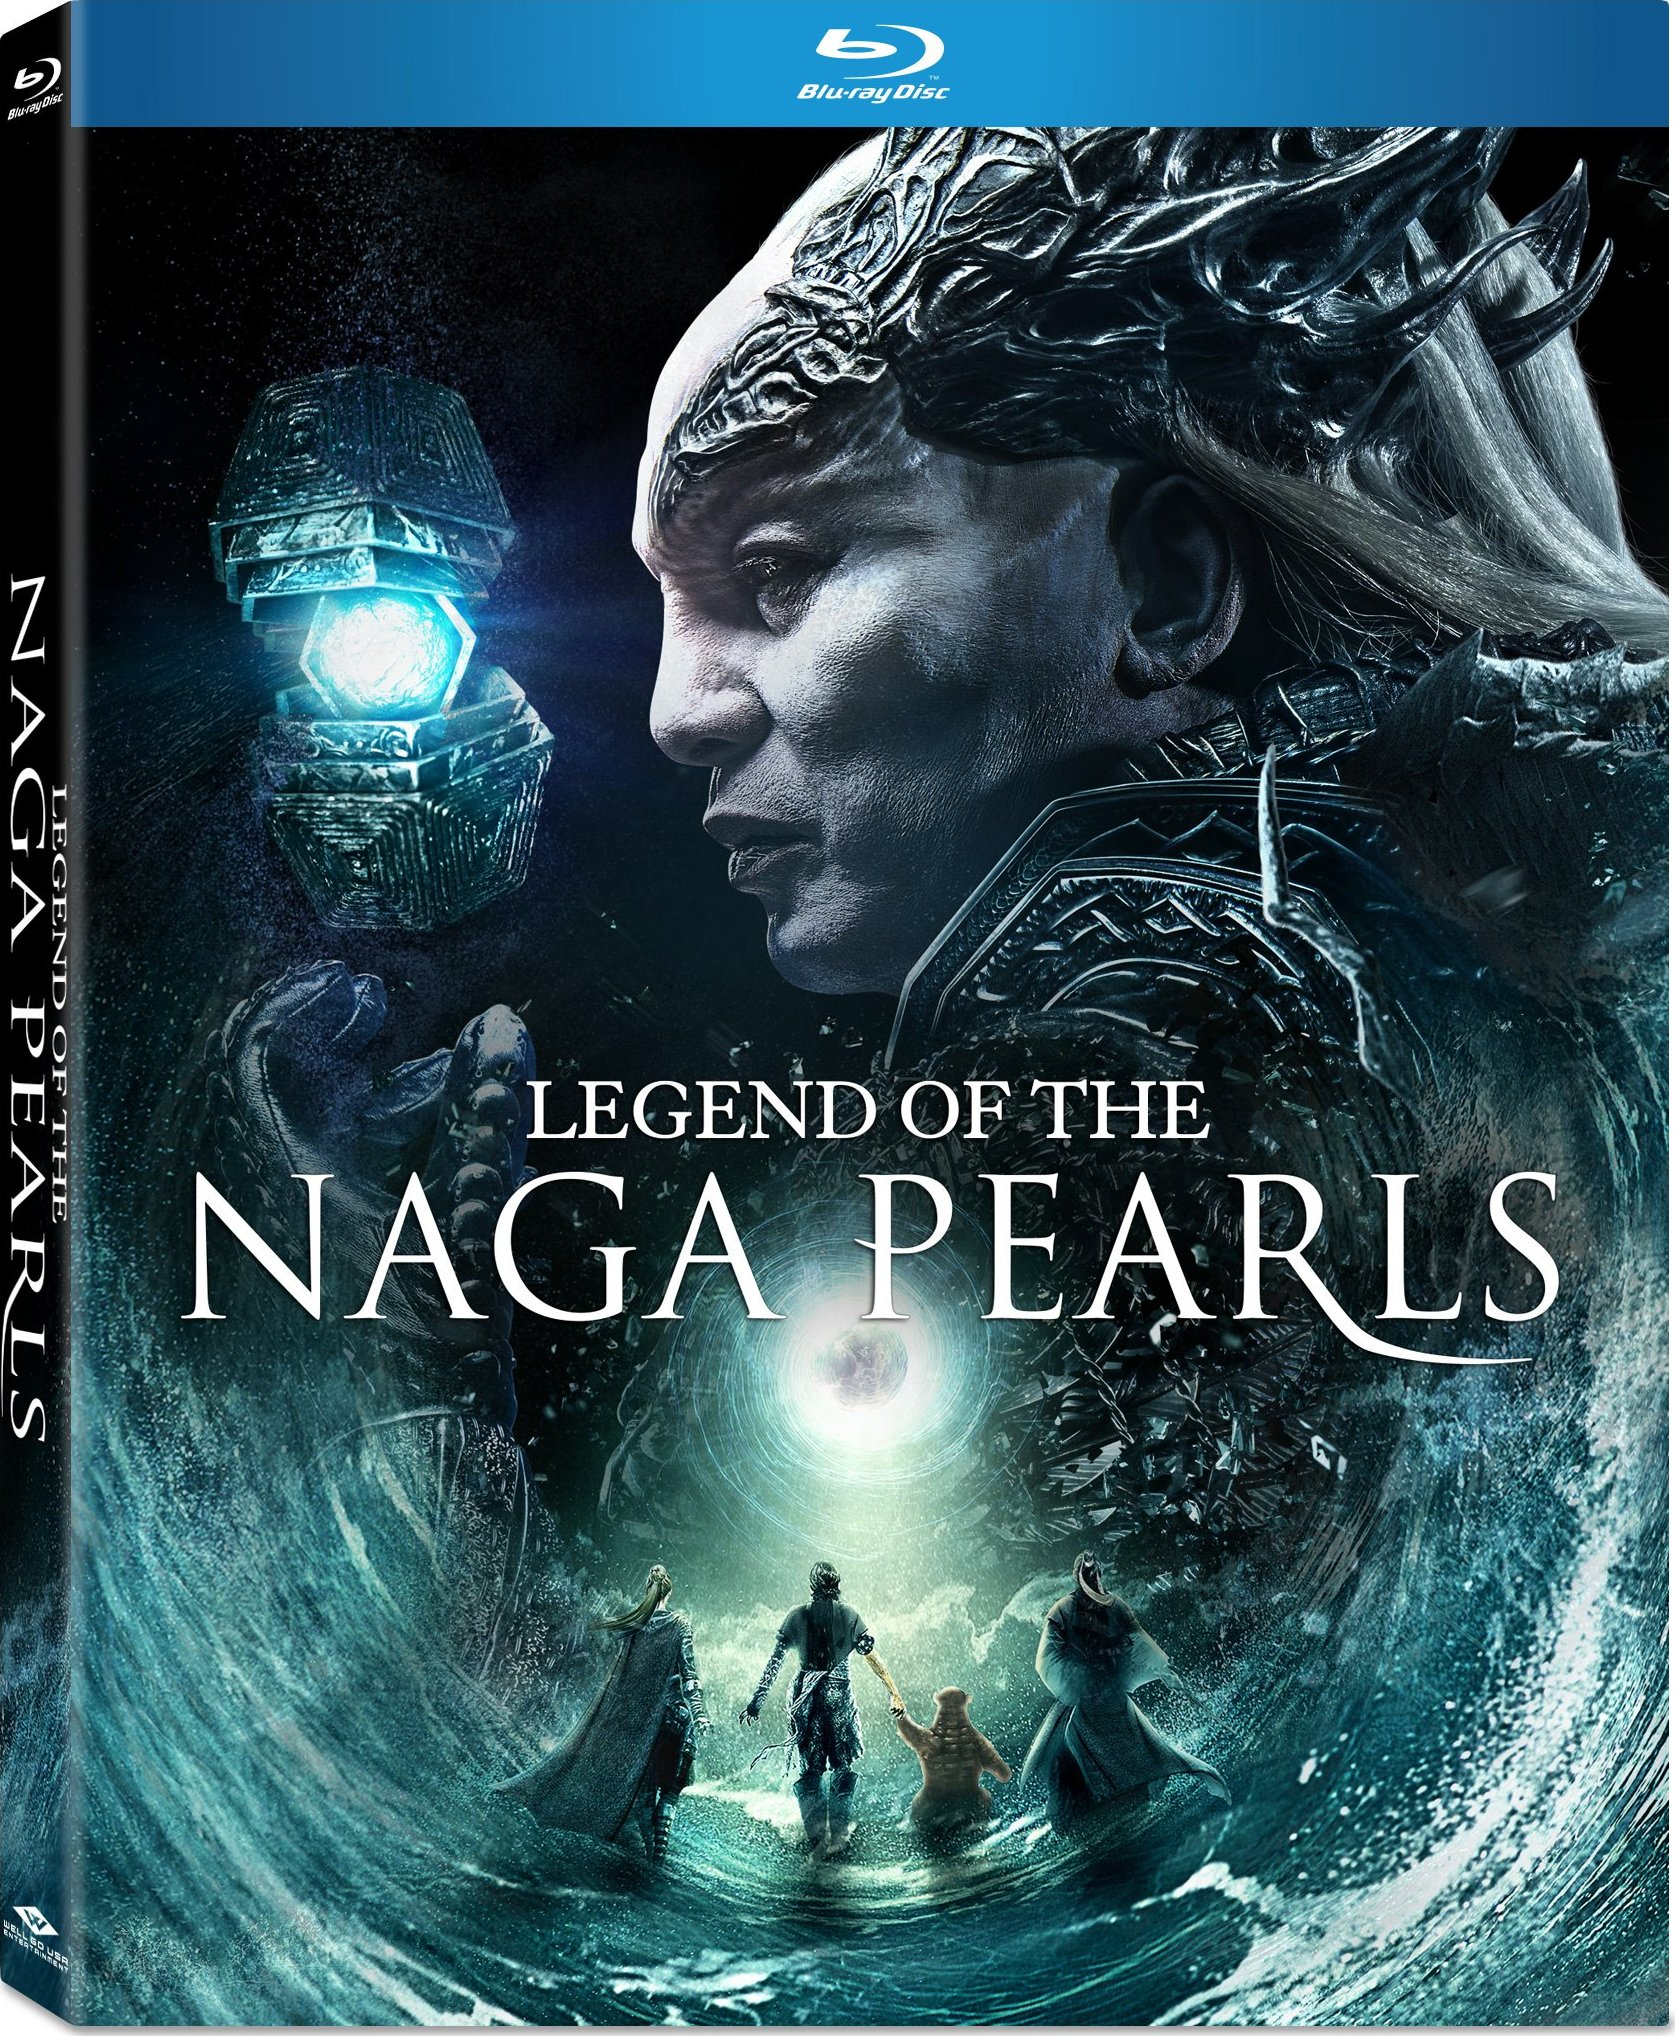 Legend of the Naga Pearls (2017) Blu-ray